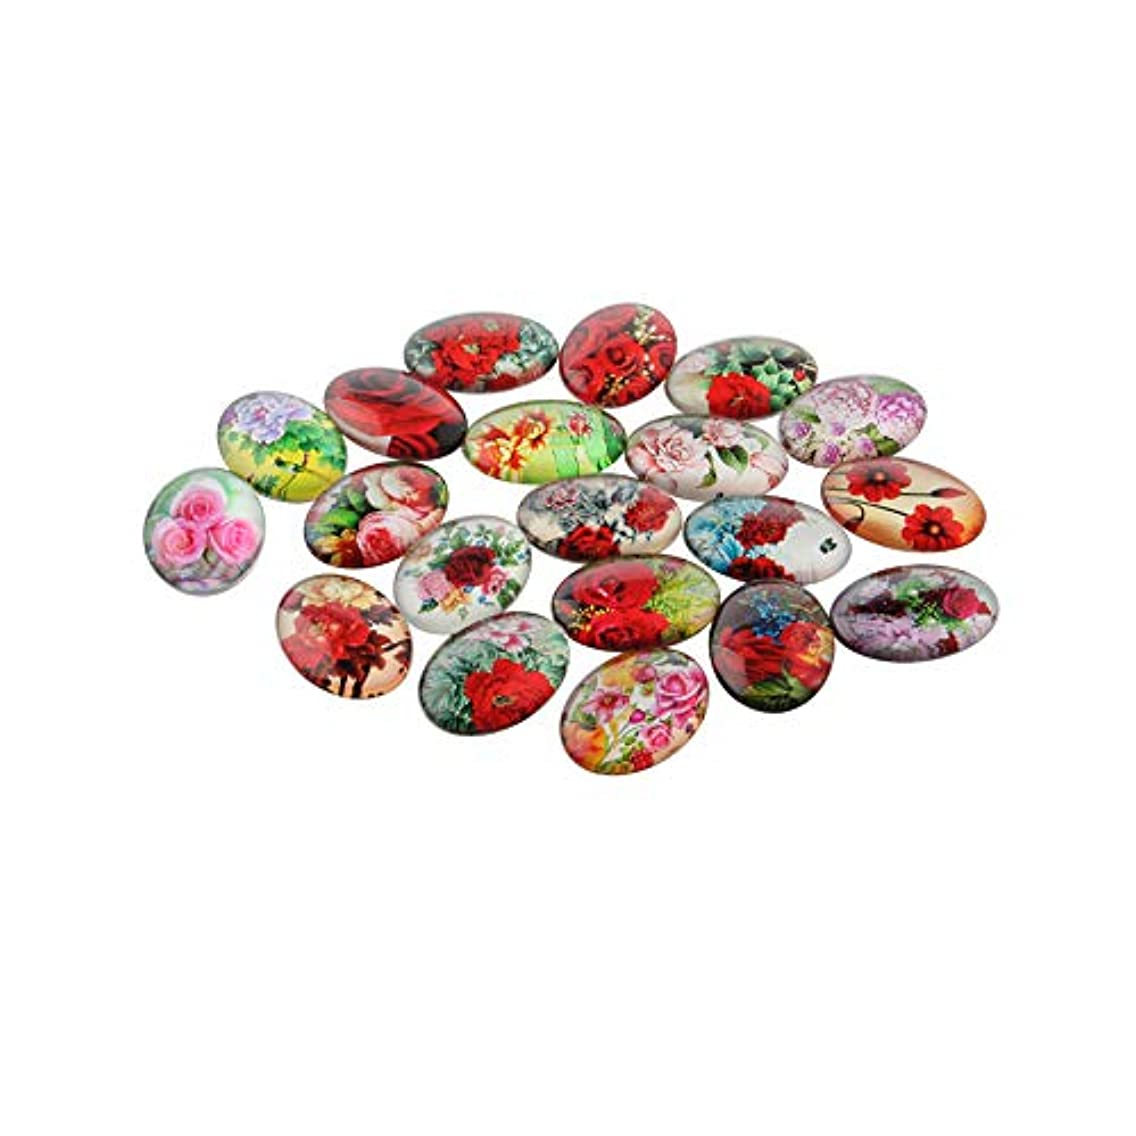 ARRICRAFT 200pcs Flower Printed Glass Cabochons 13x18mm Flat Back Oval Cabochon Beads for Necklace Embellishment DIY Jewelry Making